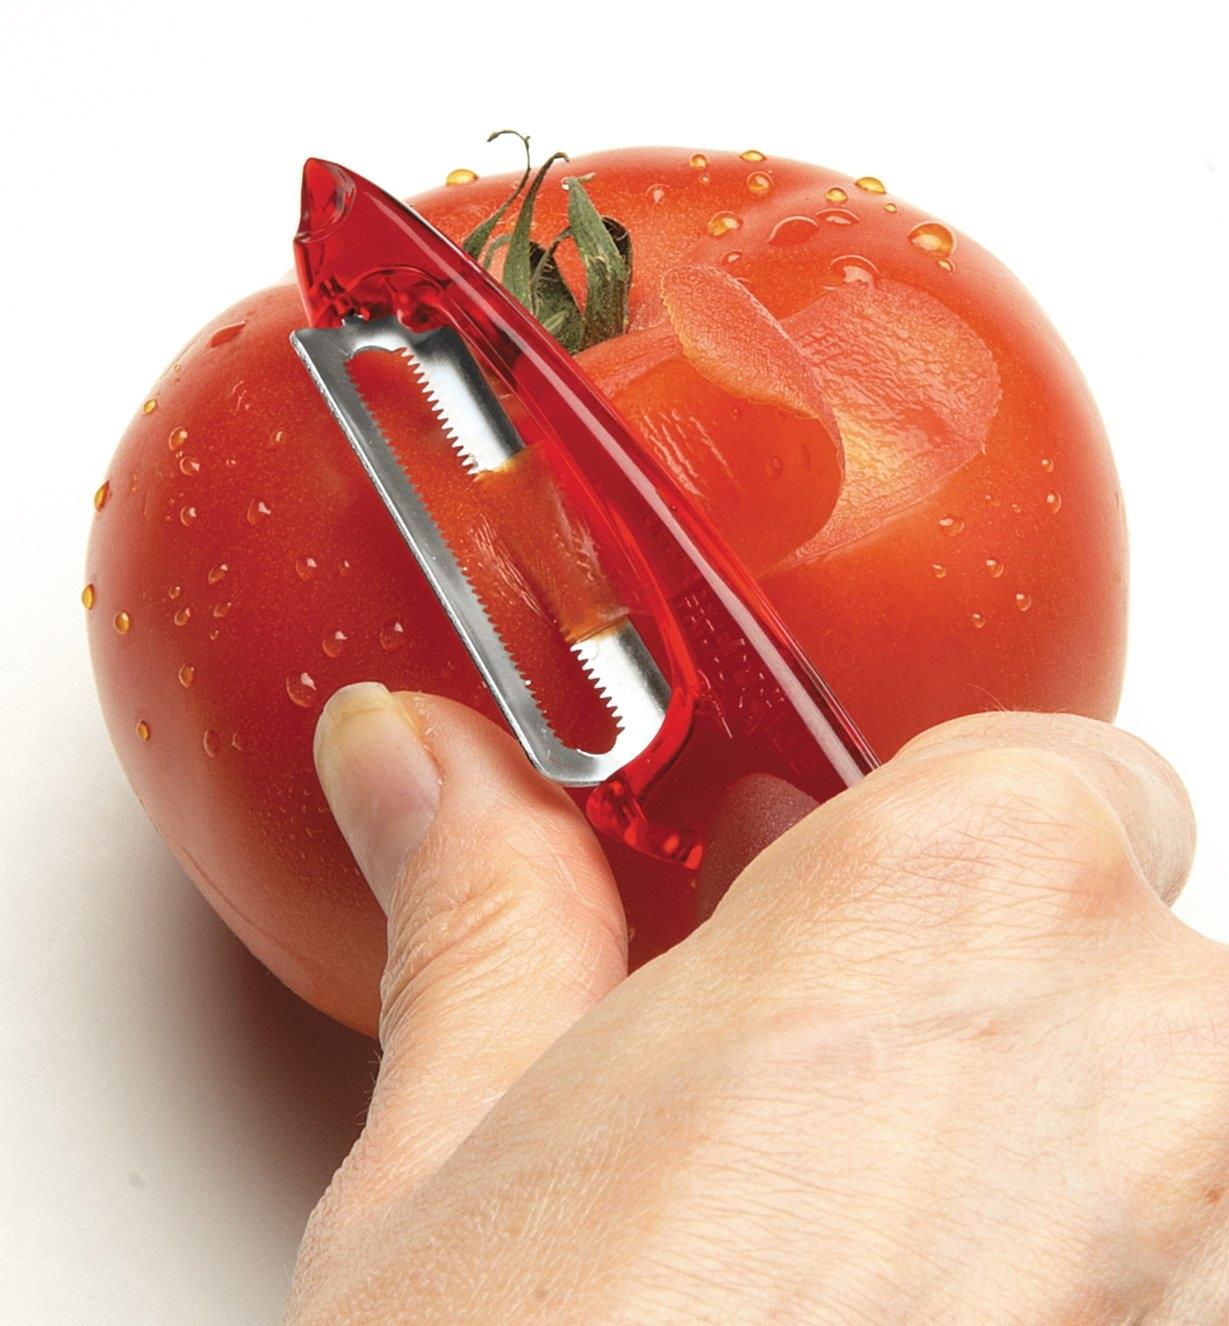 Serrated peeler used to peel a tomato